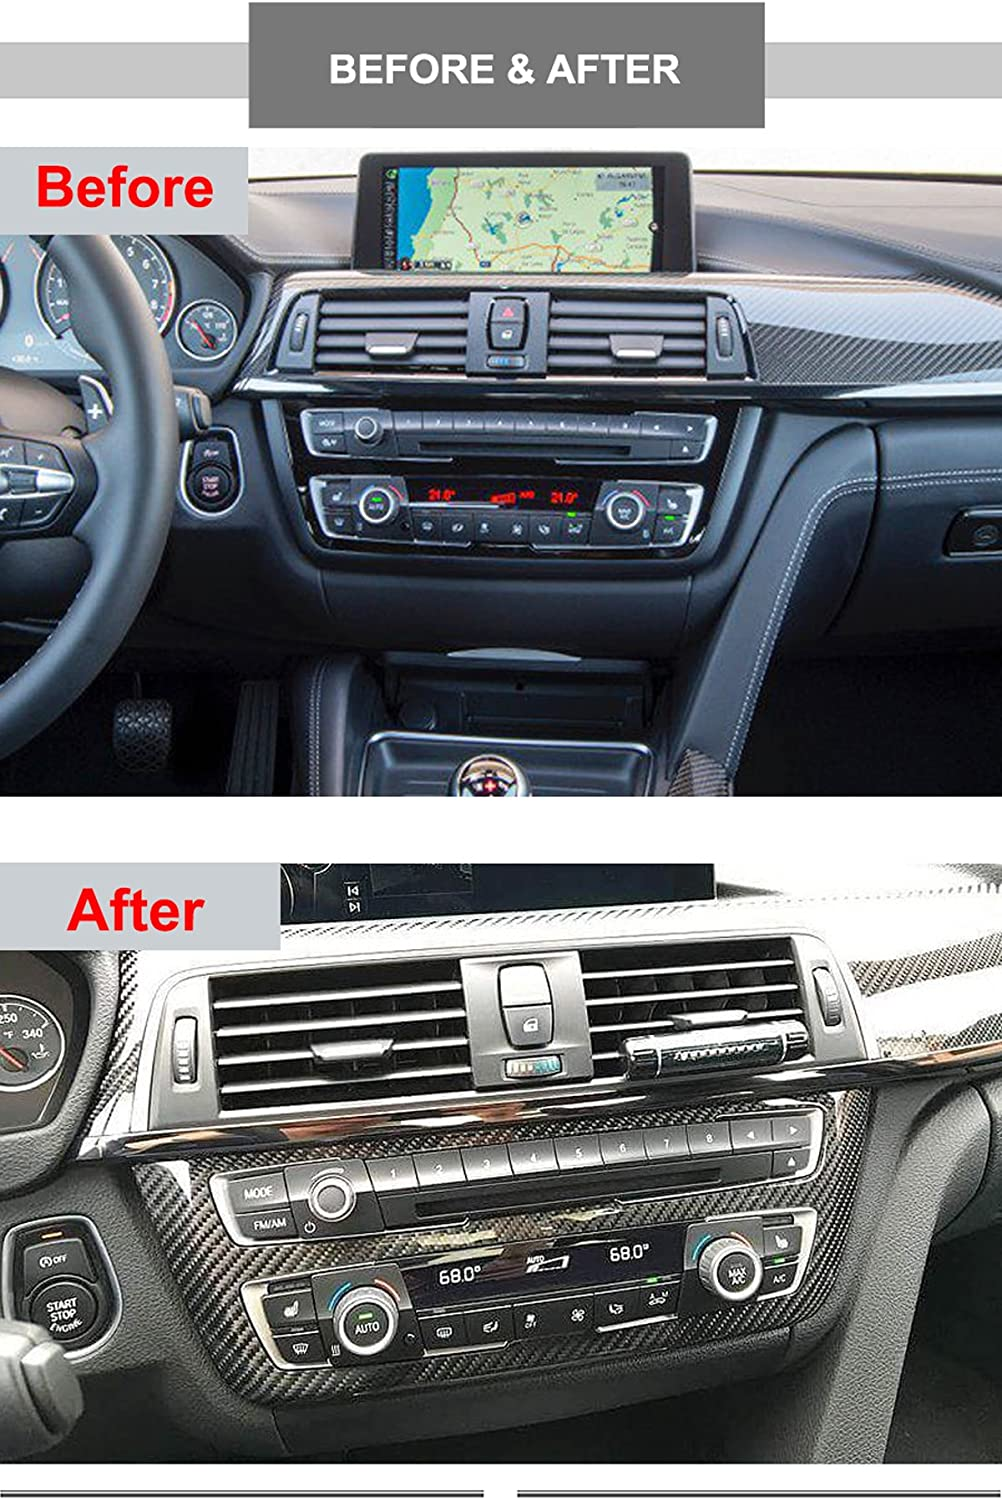 Real Carbon Fiber MotorFansClub Central Console Dashboard Trim Fit for Compatible with BMW 3 Series 4 Series F80 F82 F30 F34 M3 M4 2014 2015 2016 2017 2018